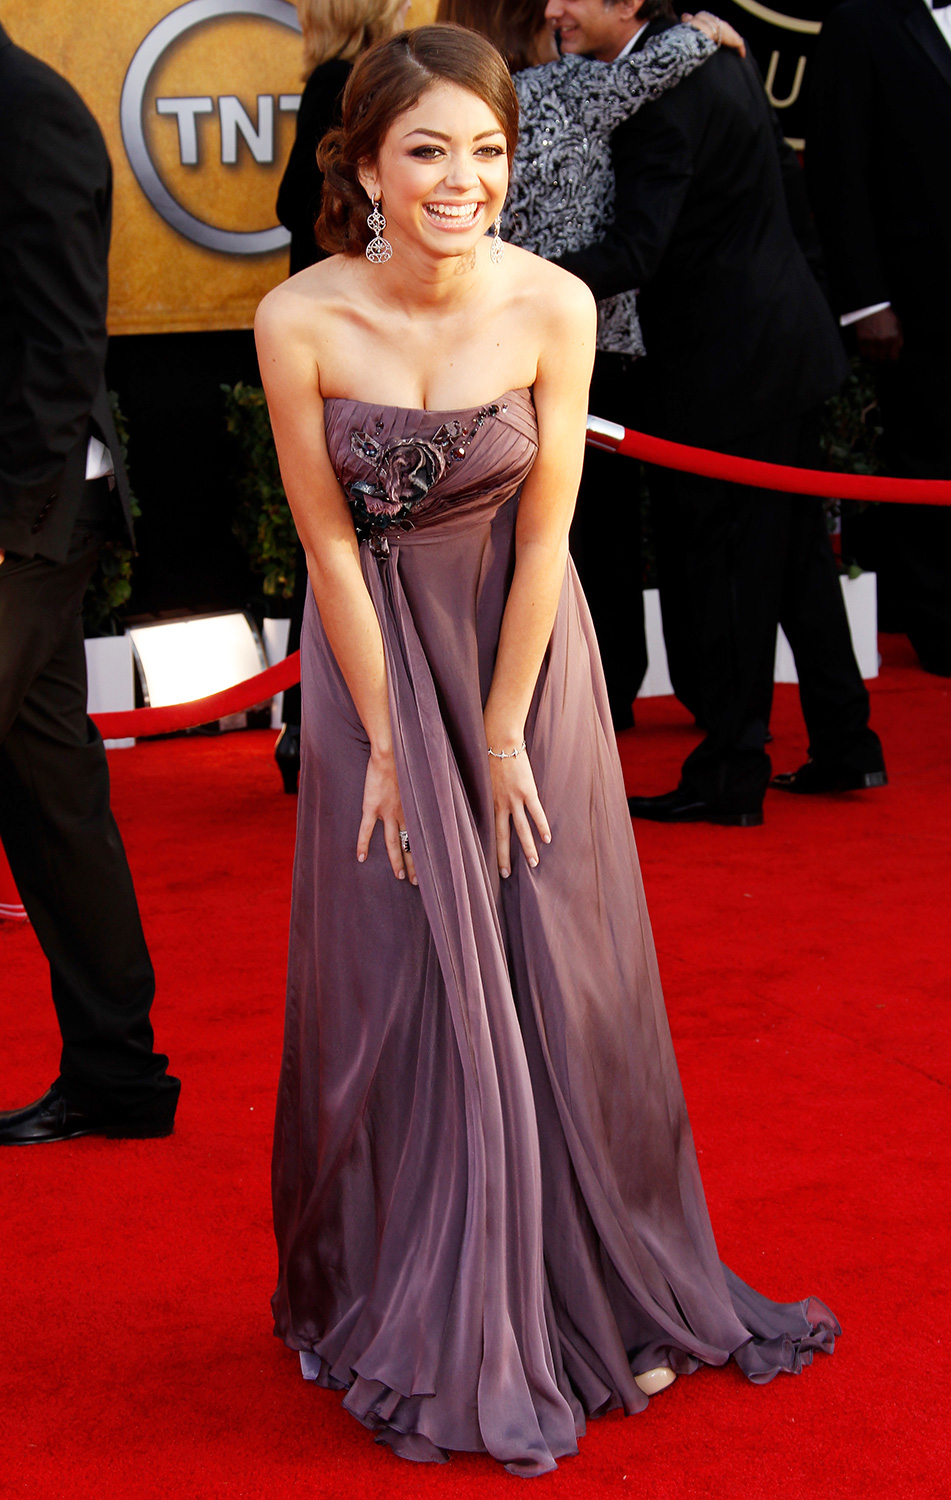 Sarah Hyland arrives at the 16th Annual Screen Actors Guild Awards held at the Shrine Auditorium on January 23, 2010 in Los Angeles, California